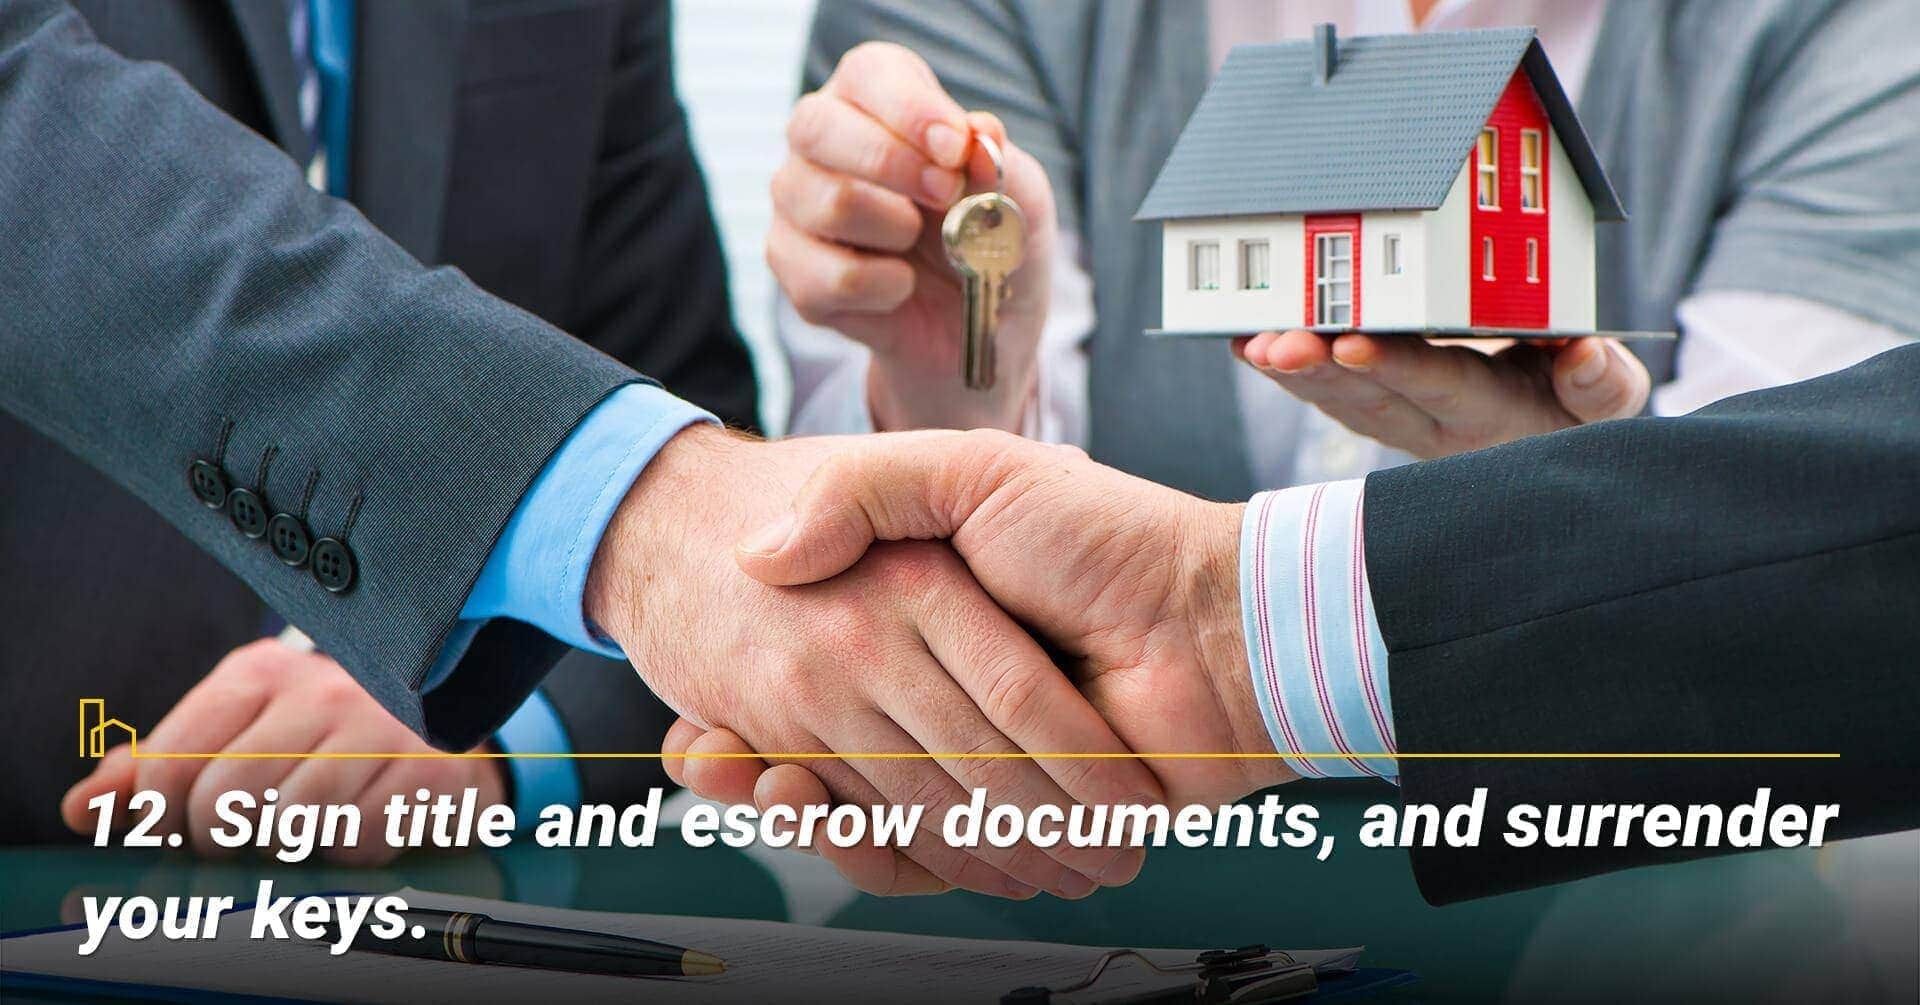 Sign title and escrow documents, and surrender your keys, sign final documents and hand over your keys